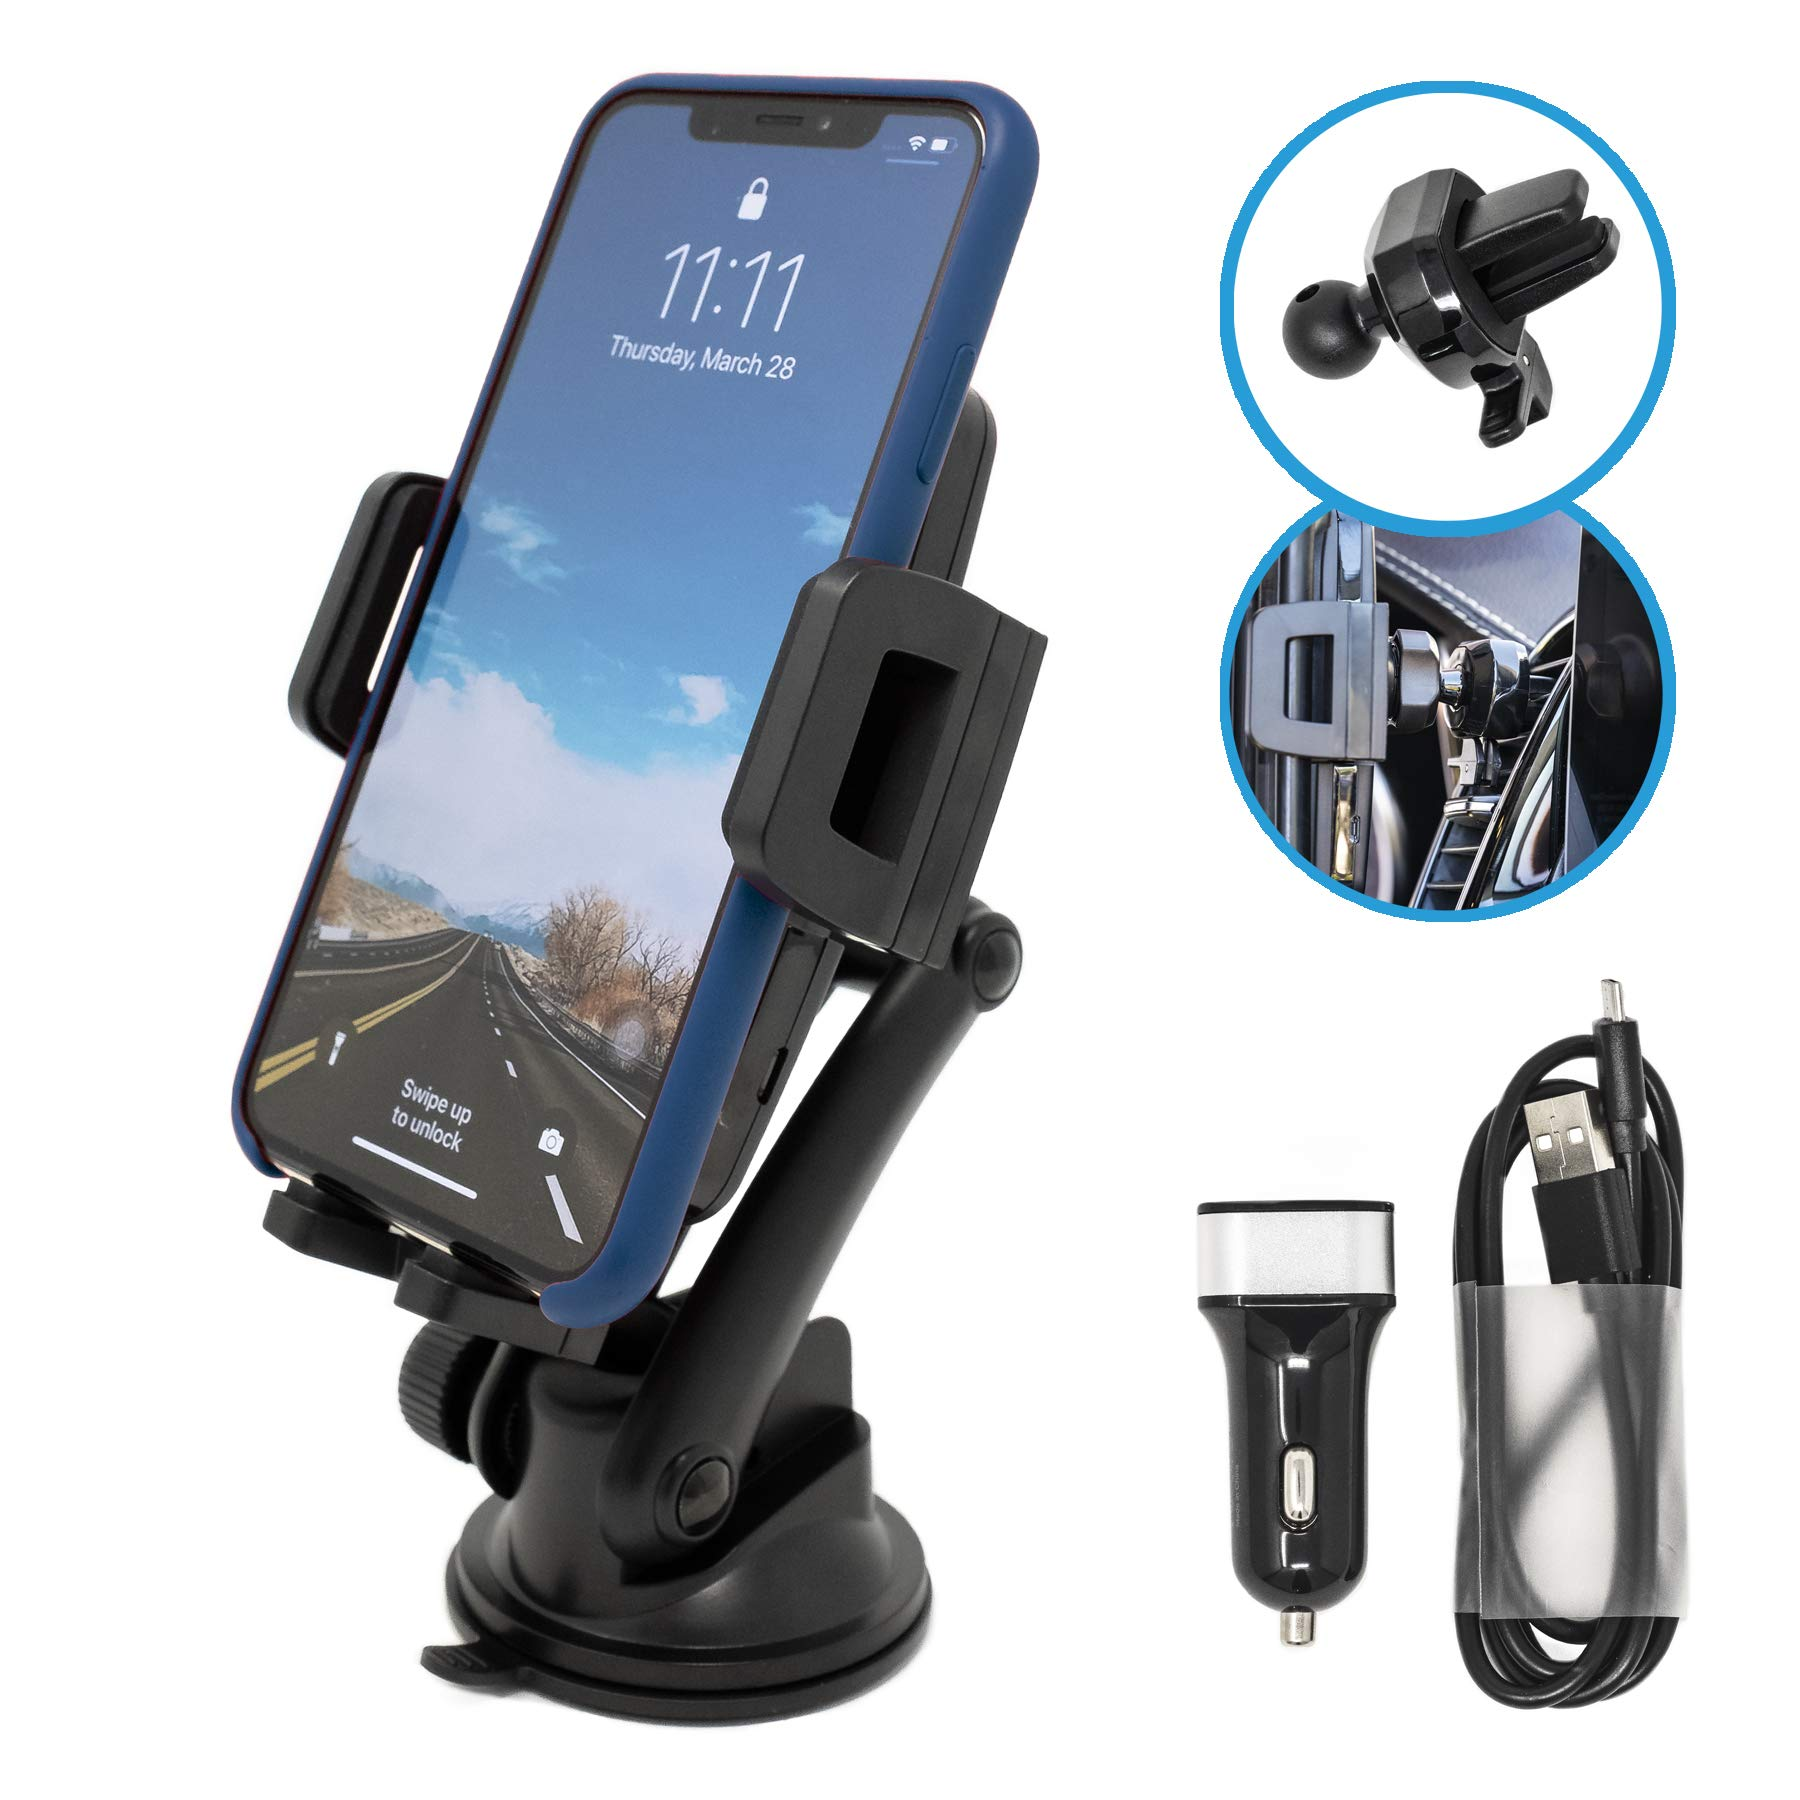 Opentron Wireless Car Charger Car Mount Air Vent Phone Holder, Fast Charging, QI Certified, 5W/7.5W/10W for iPhone Xs/Xs Max/XR/X/ 8/8 Plus, Samsung Galaxy S10 /S10+/S9 /S9+/S8 /S8+ by opentron